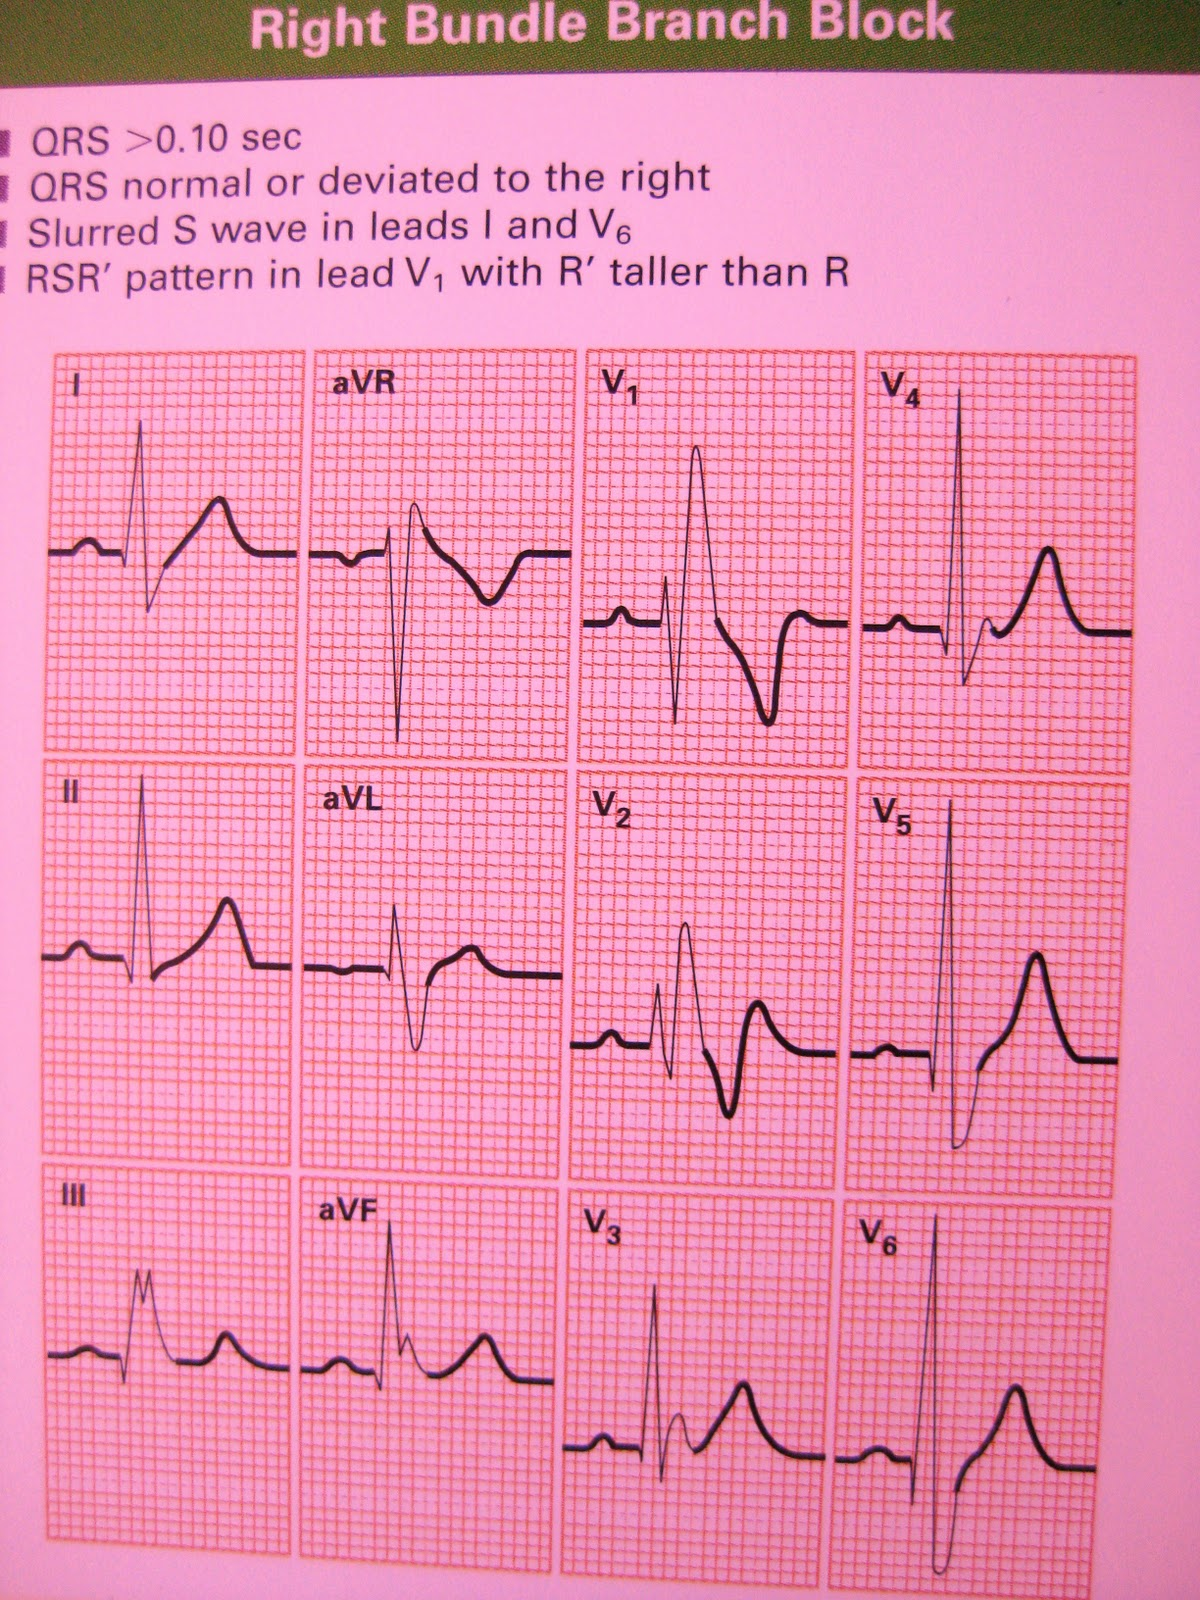 12 lead ecg images IPhone Does Not Show Up In My Computer - Trouble Fixers